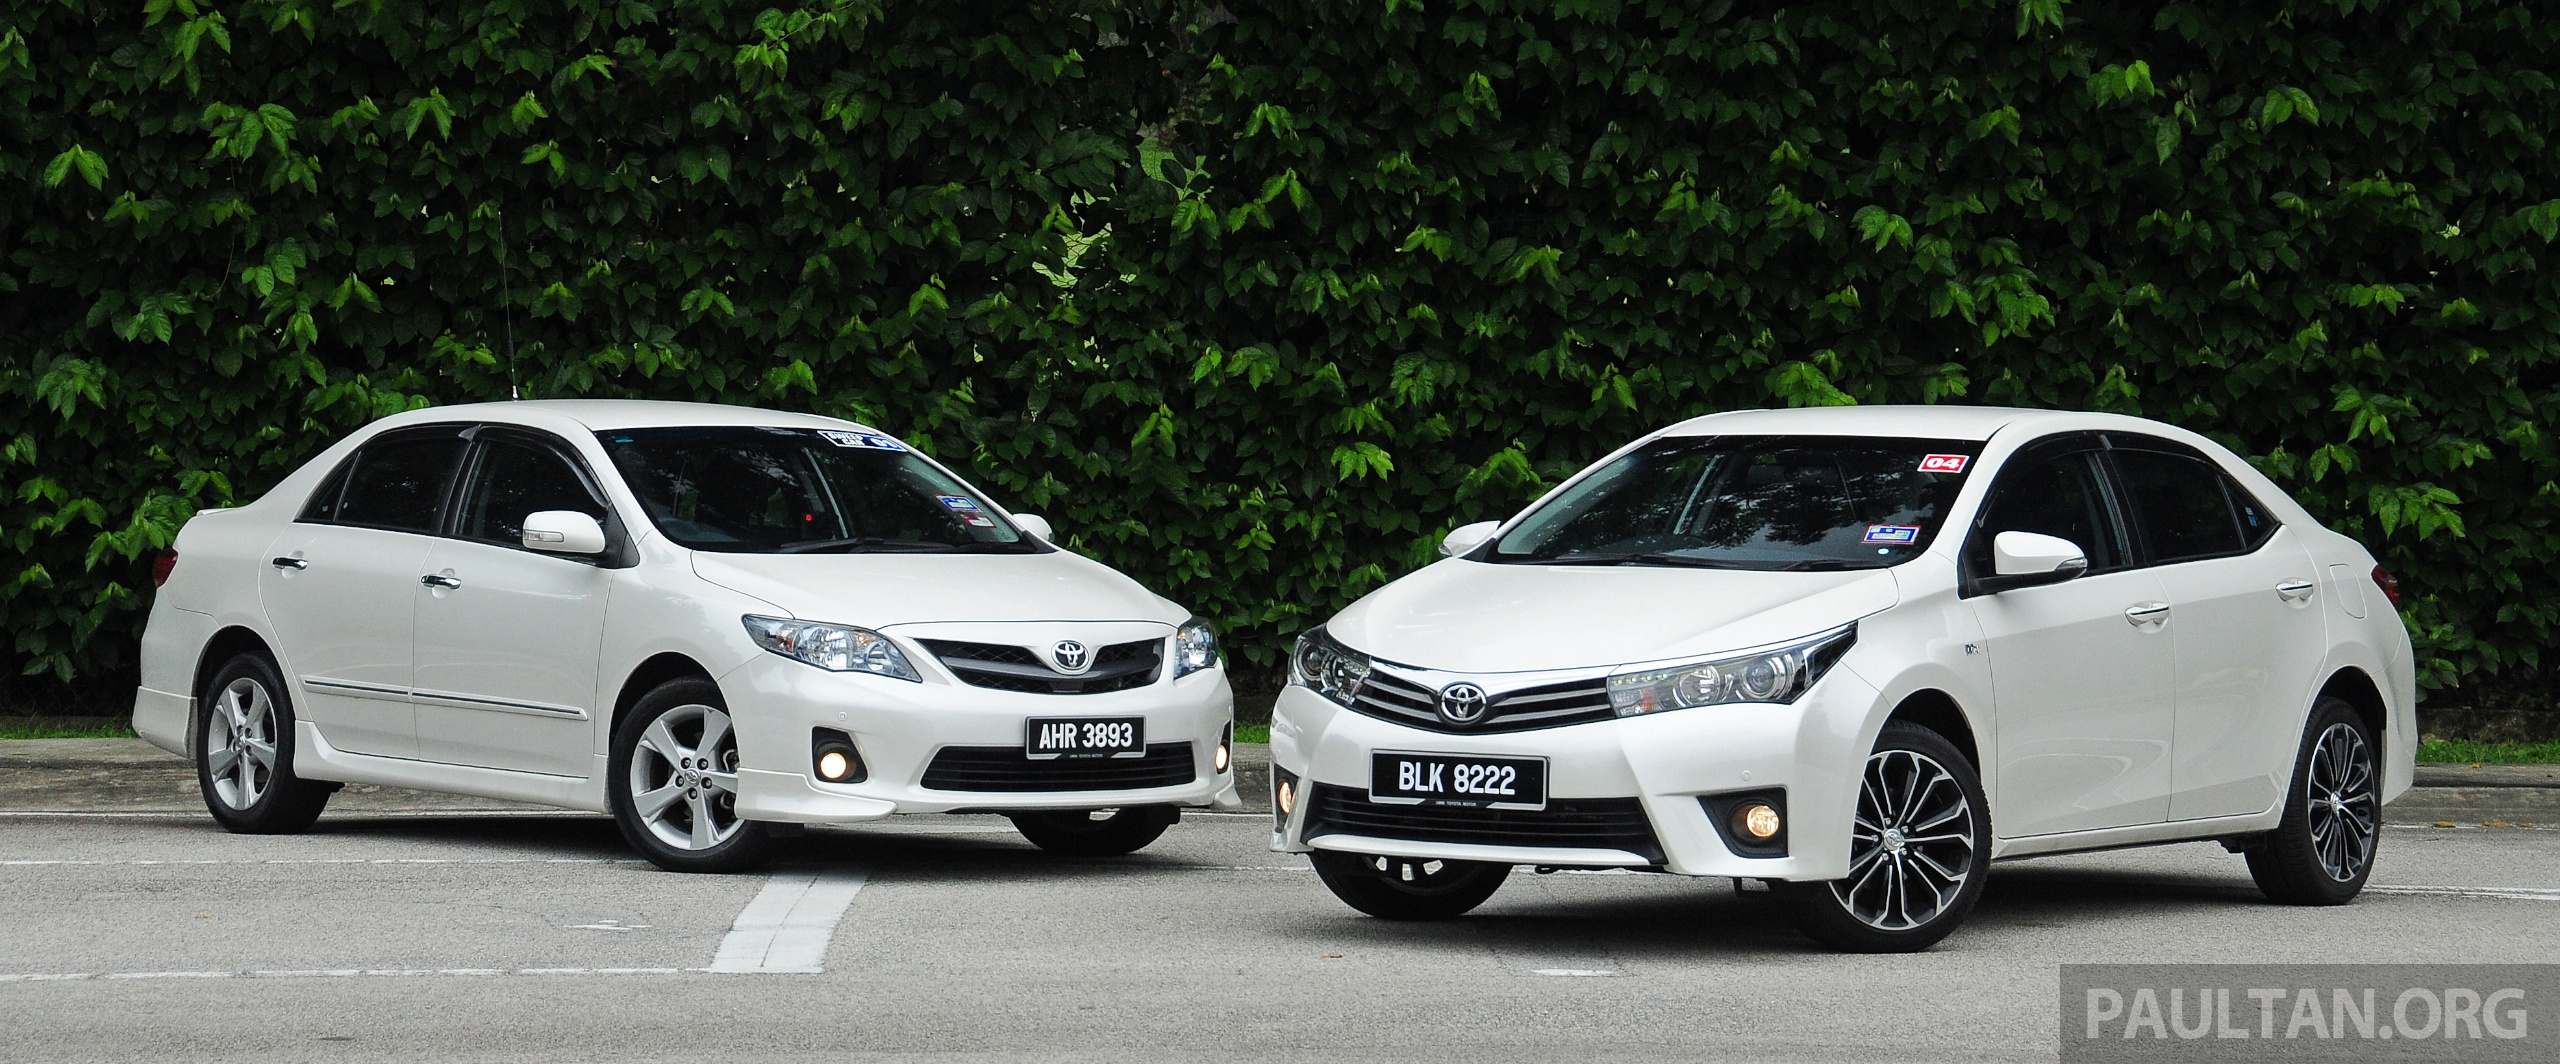 Gallery old and new toyota corolla altis compared image 222543